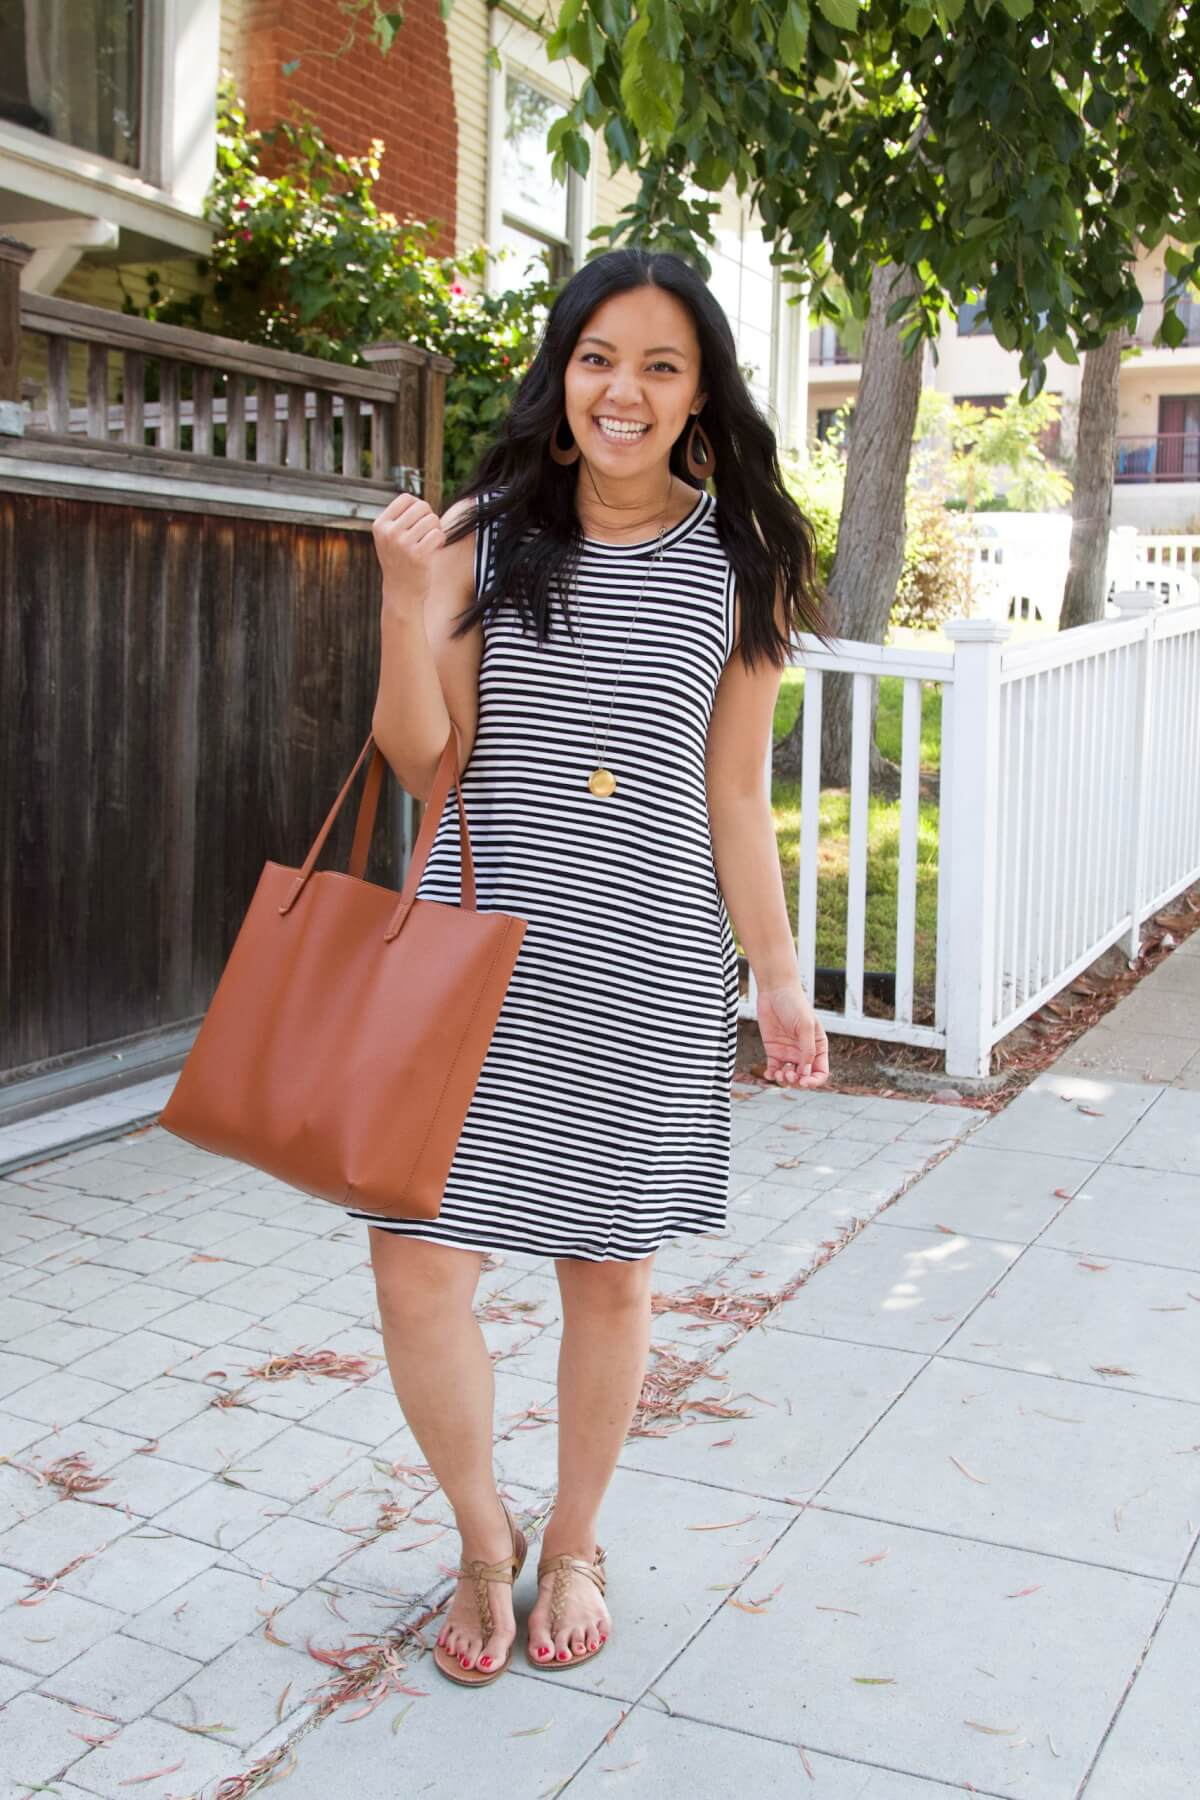 Nicer Casual Outfit for Summer to Early Fall Transition: black and white striped t-shirt dress + tan t-strap sandals + tan earrings + gold pendant necklace + tan tote